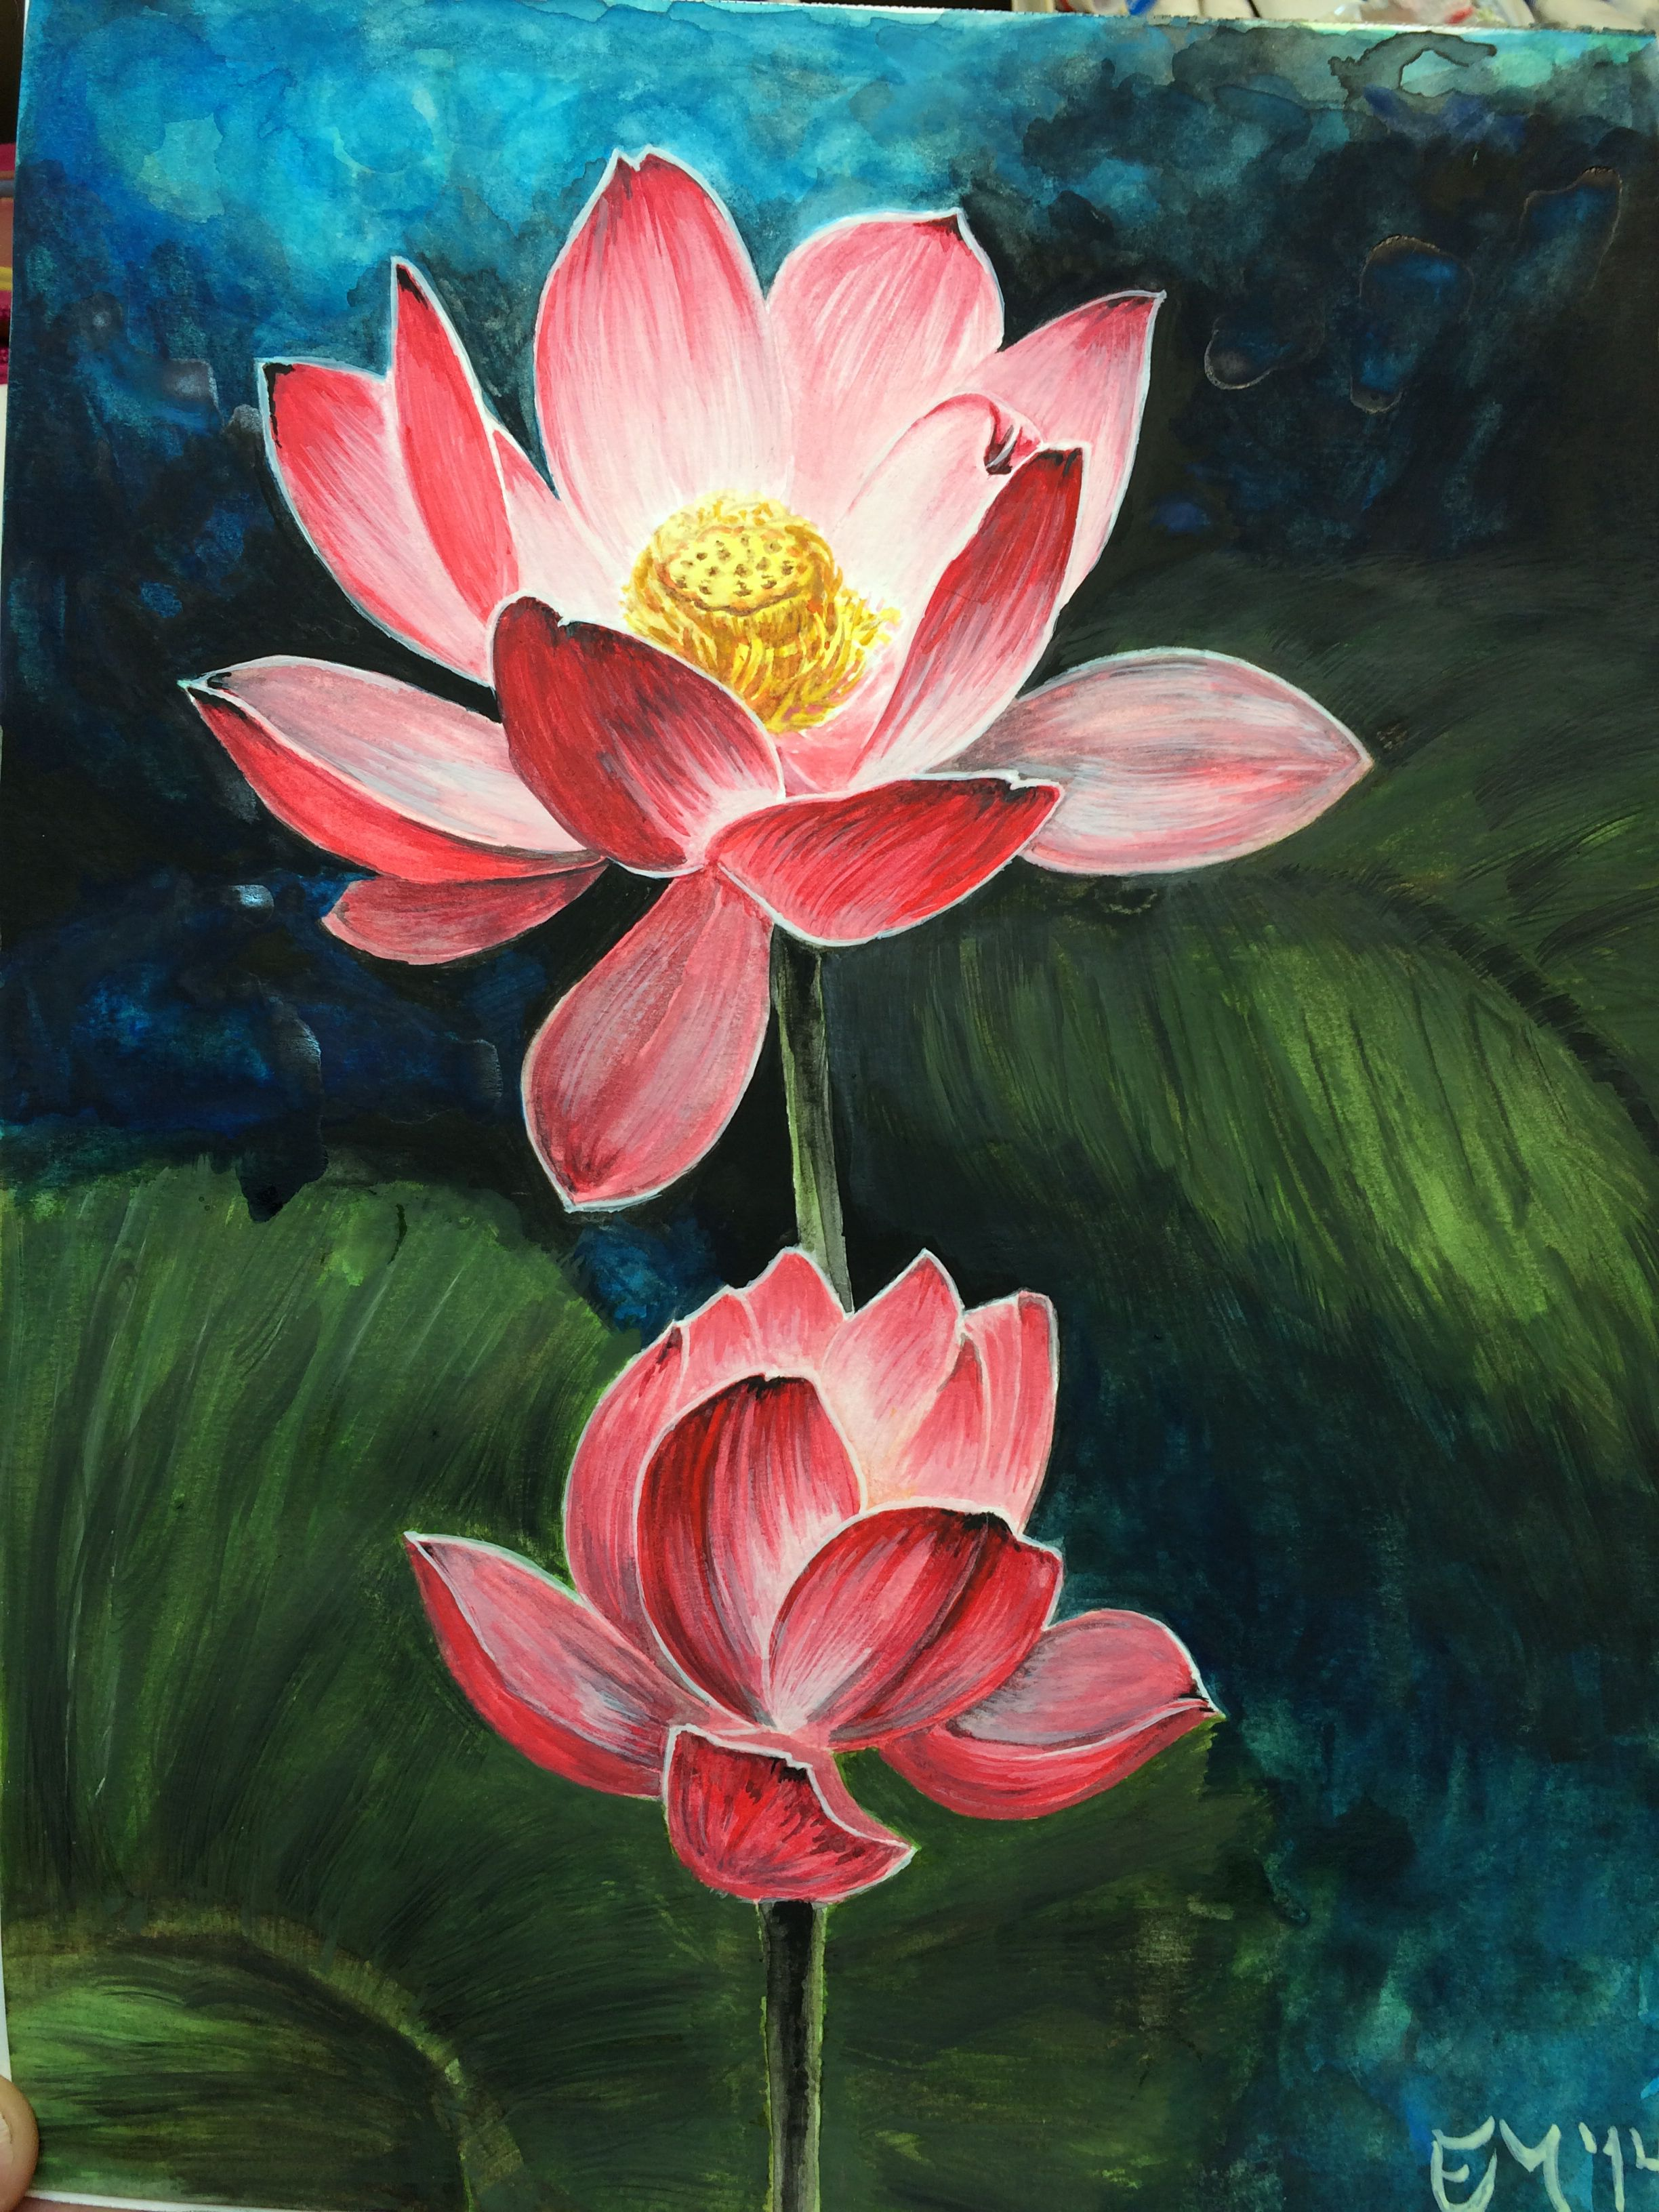 Elliot masker. Water color, lotus. Follow me on instagram and fcbk ...